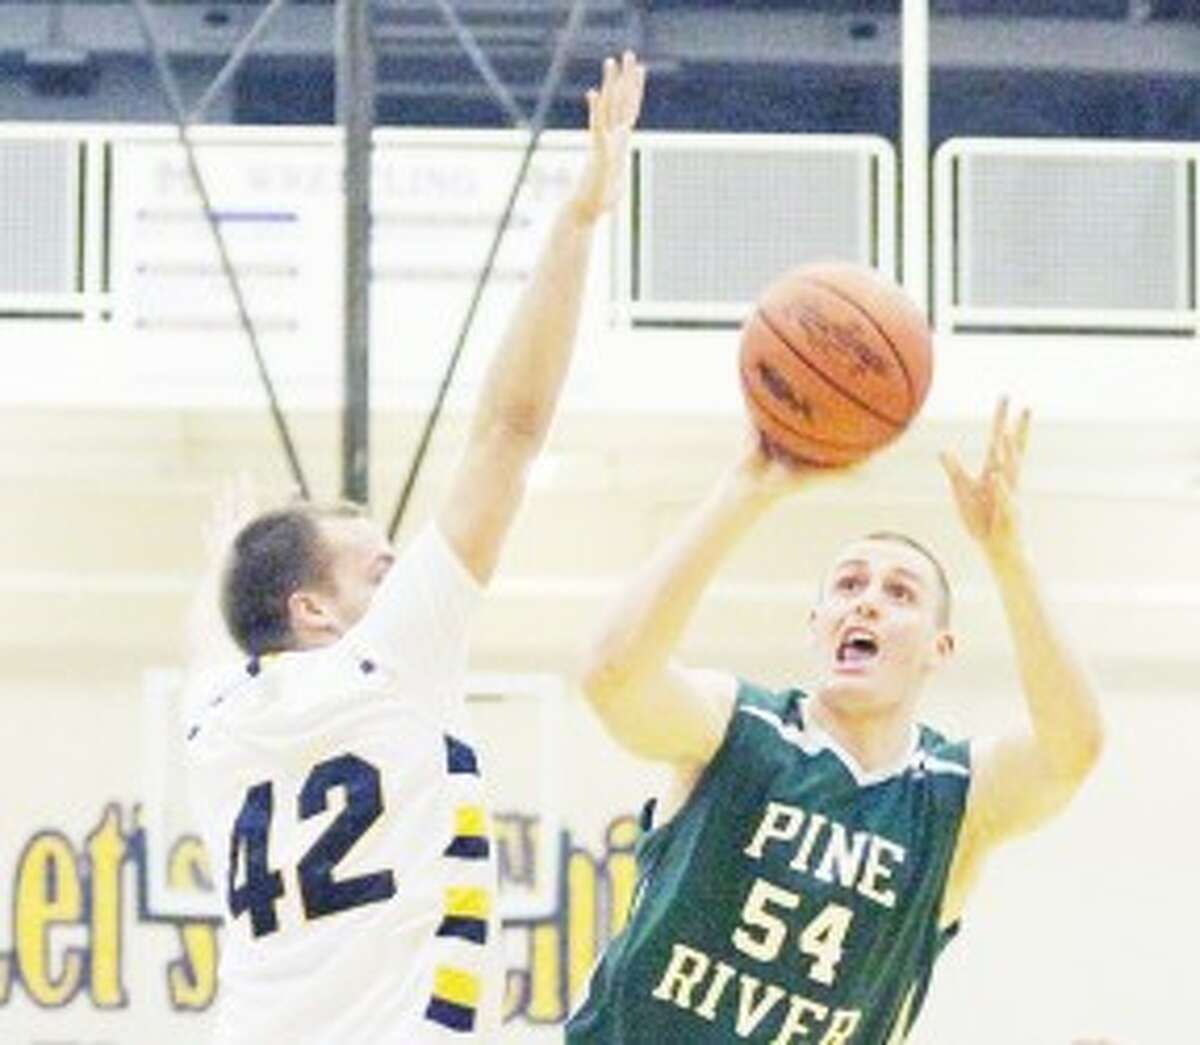 working for the win: Pine River's Lincoln Erickson (54) tries to get a shot off over Manistee's Jordan MacArthur during Monday's basketball contest. (Herald Review photo/Matt Wenzel)